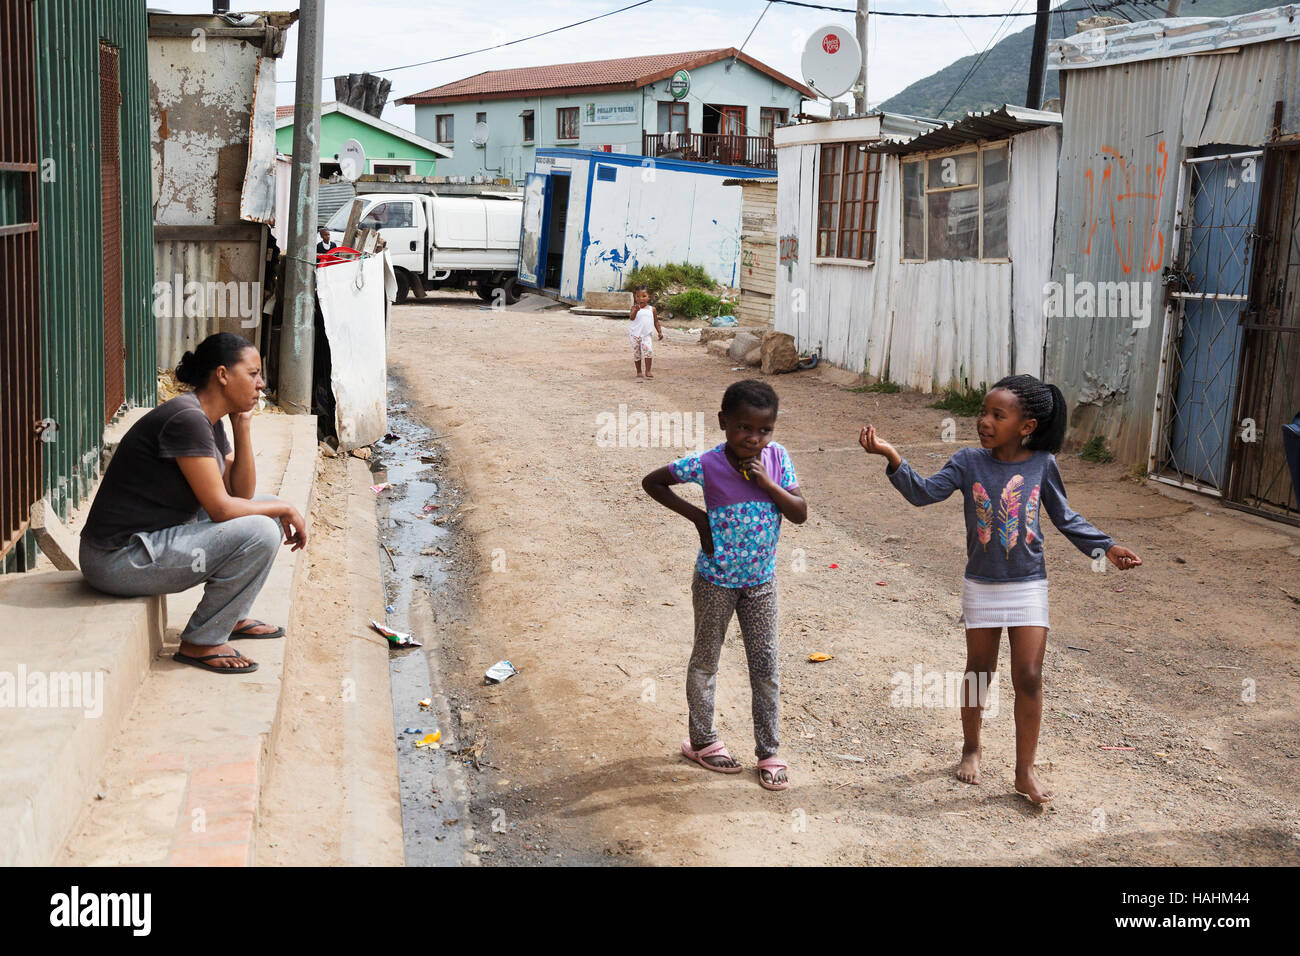 two children talking to an adult on the street, Imizamo Yethu township, Cape Town, South Africa Stock Photo